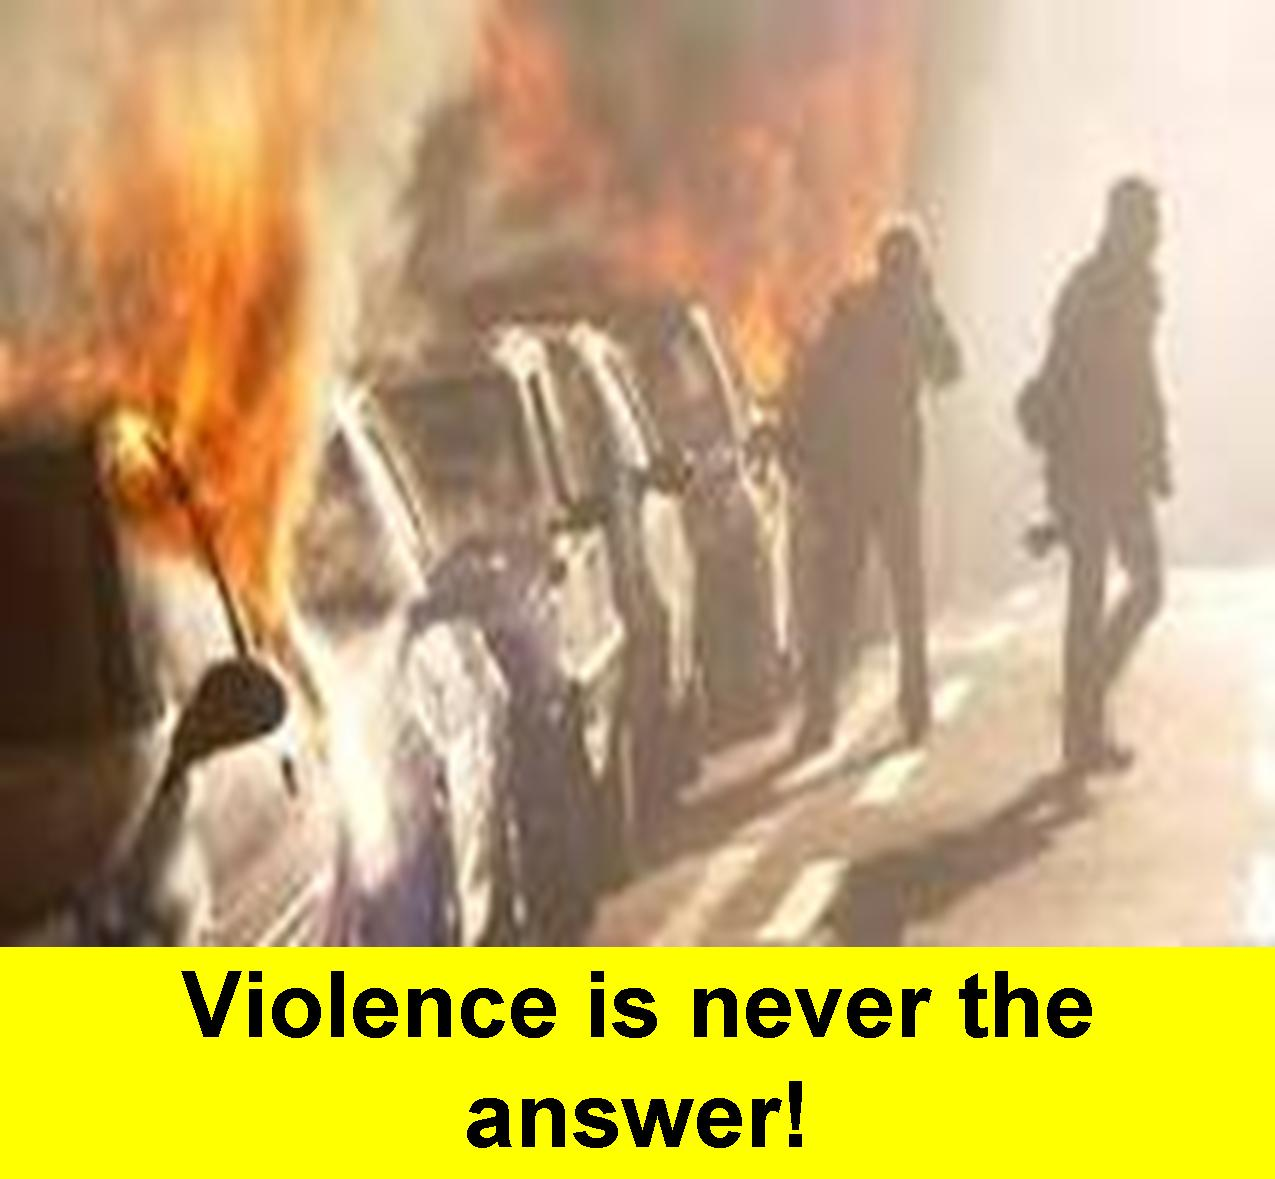 ways to solve problems without violence According to unesco, violence begins from the mind it must, therefore, be uprooted from the mind itself this goes directly to the root cause of terrorism.